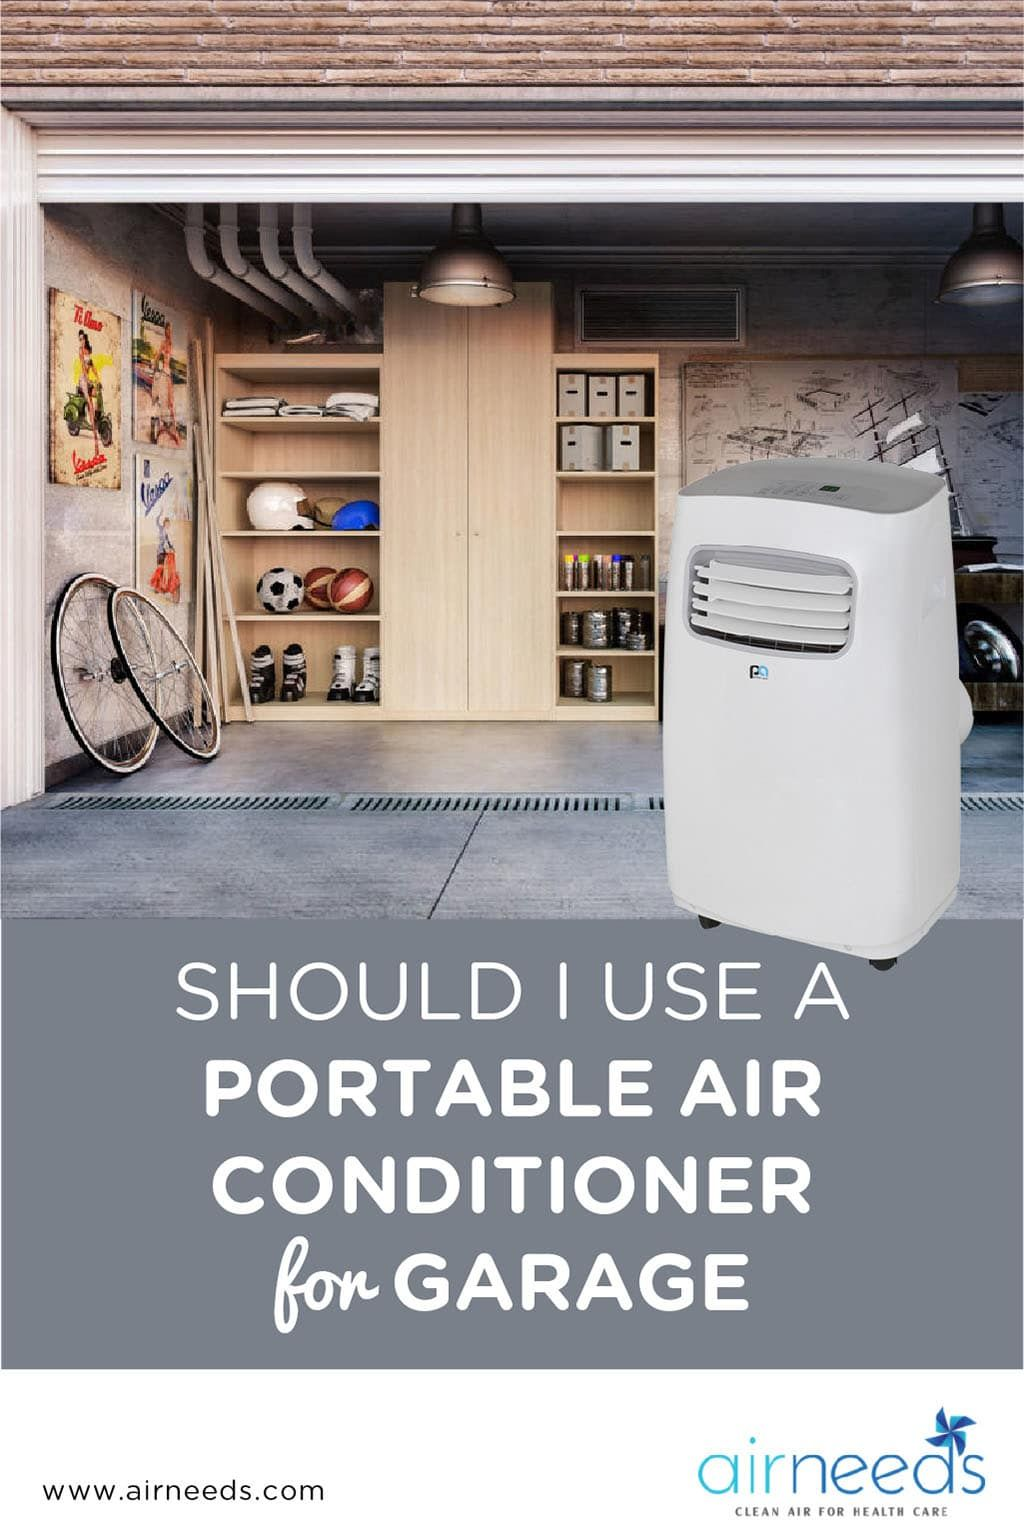 Should I Use A Portable Air Conditioner For Garage Https Airneeds Com Should I Use A Portab Portable Air Conditioner Garage Air Conditioner Air Conditioner